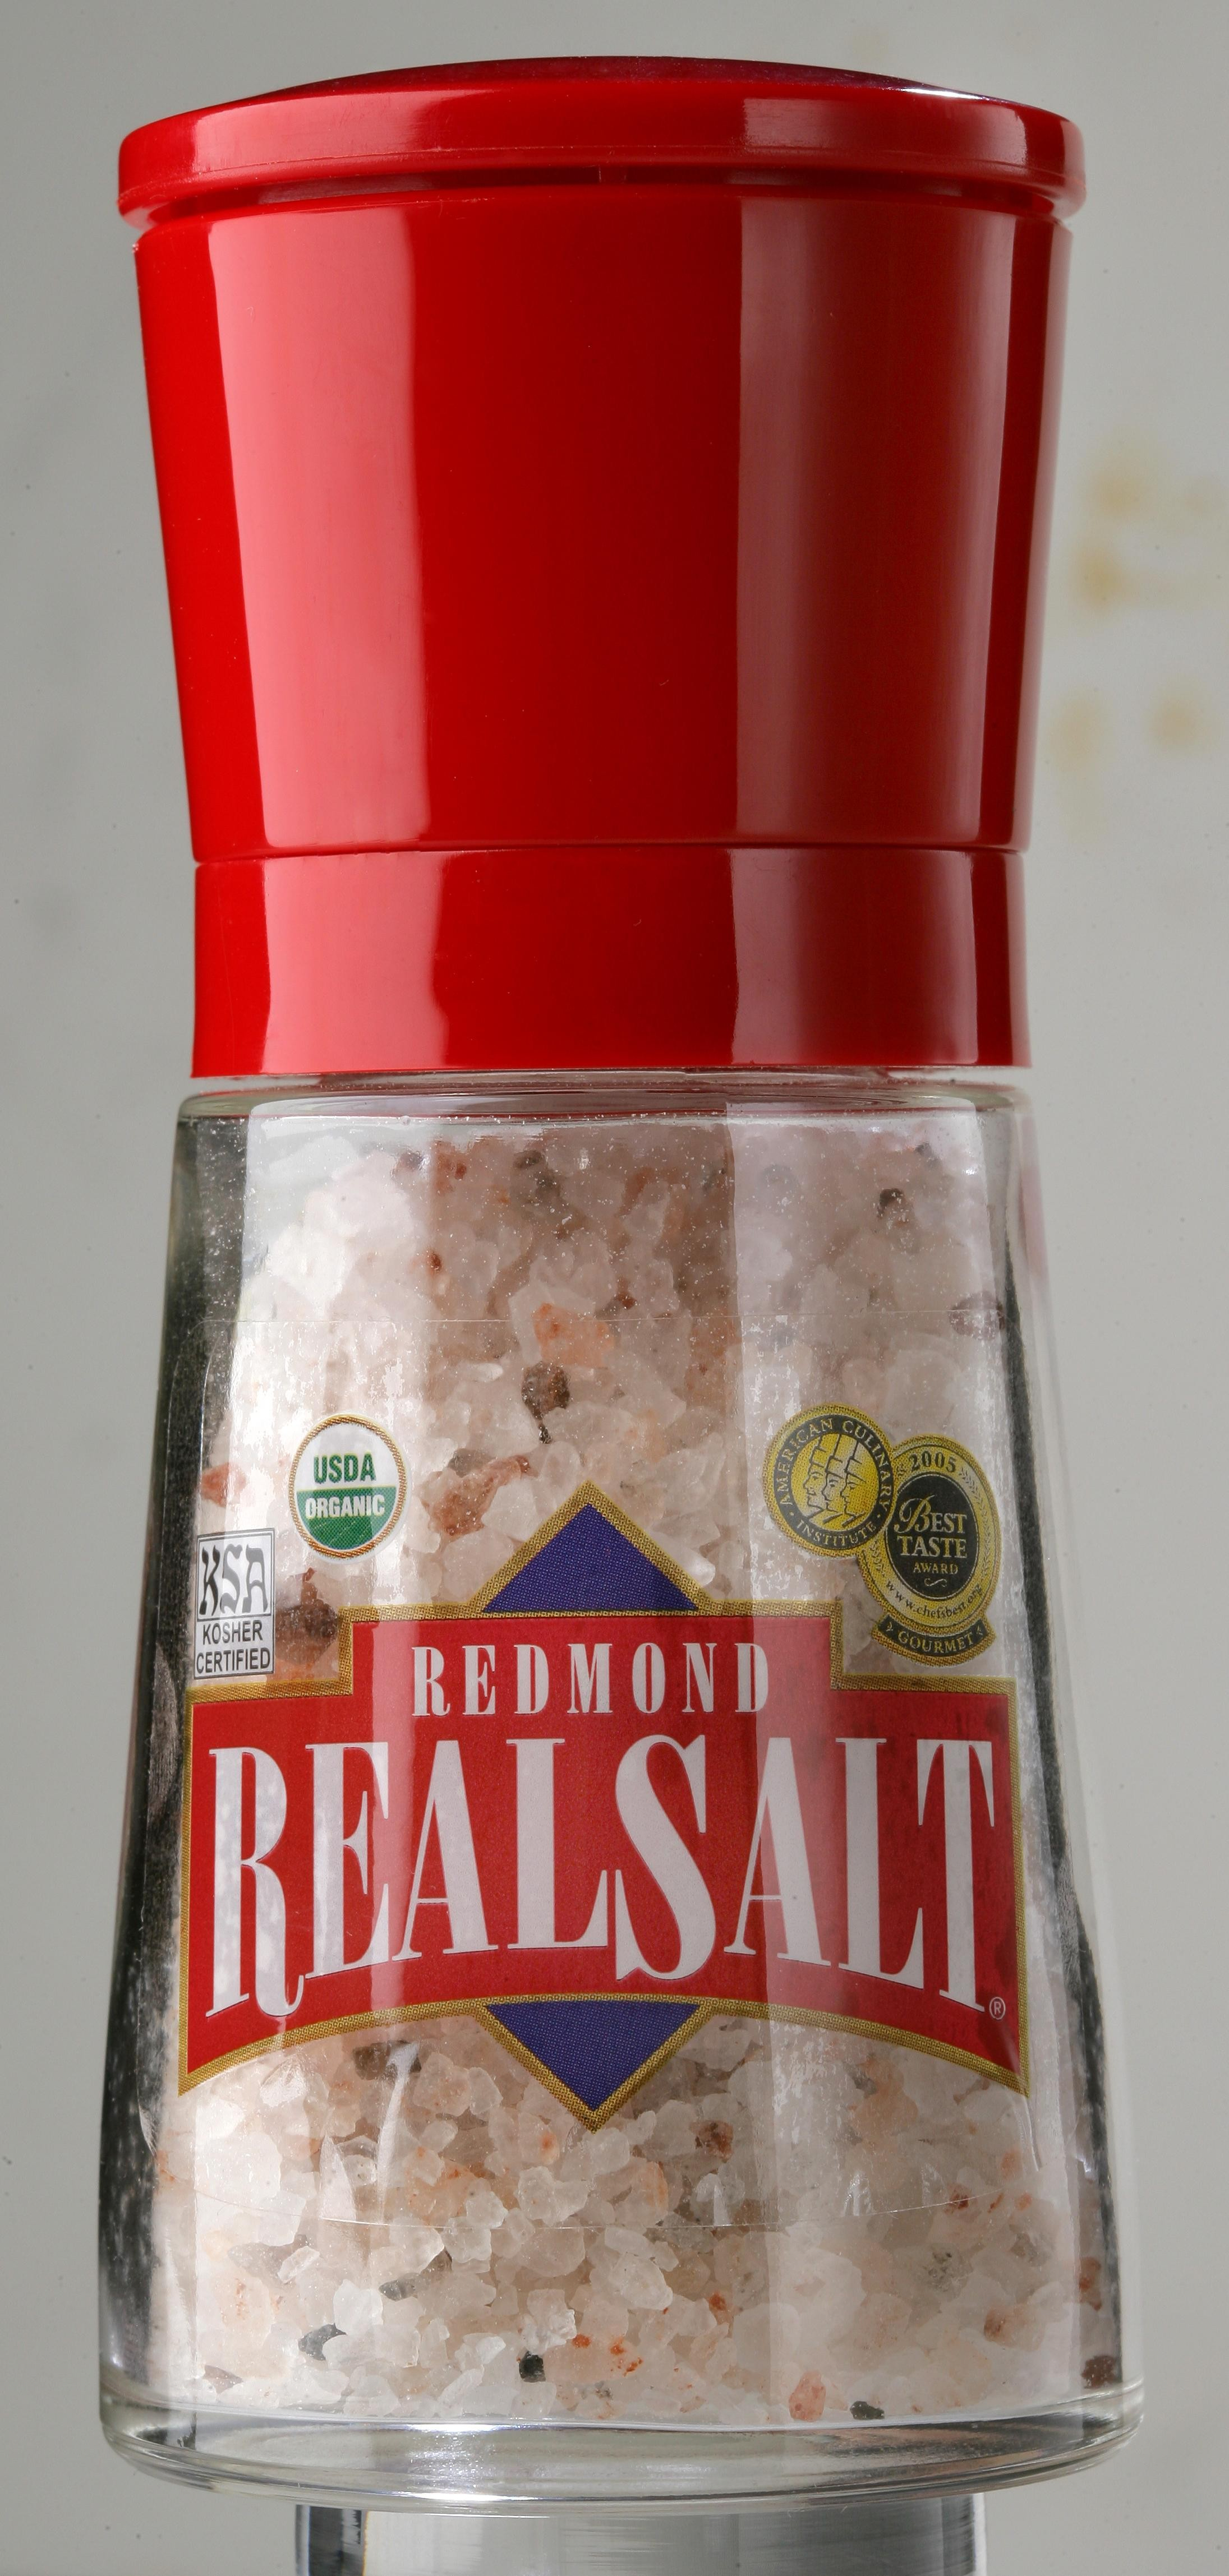 "Red Bavaria Glass and Ceramic Grinder w/ Real Salt Coarse Grind Salt (""5oz"")"